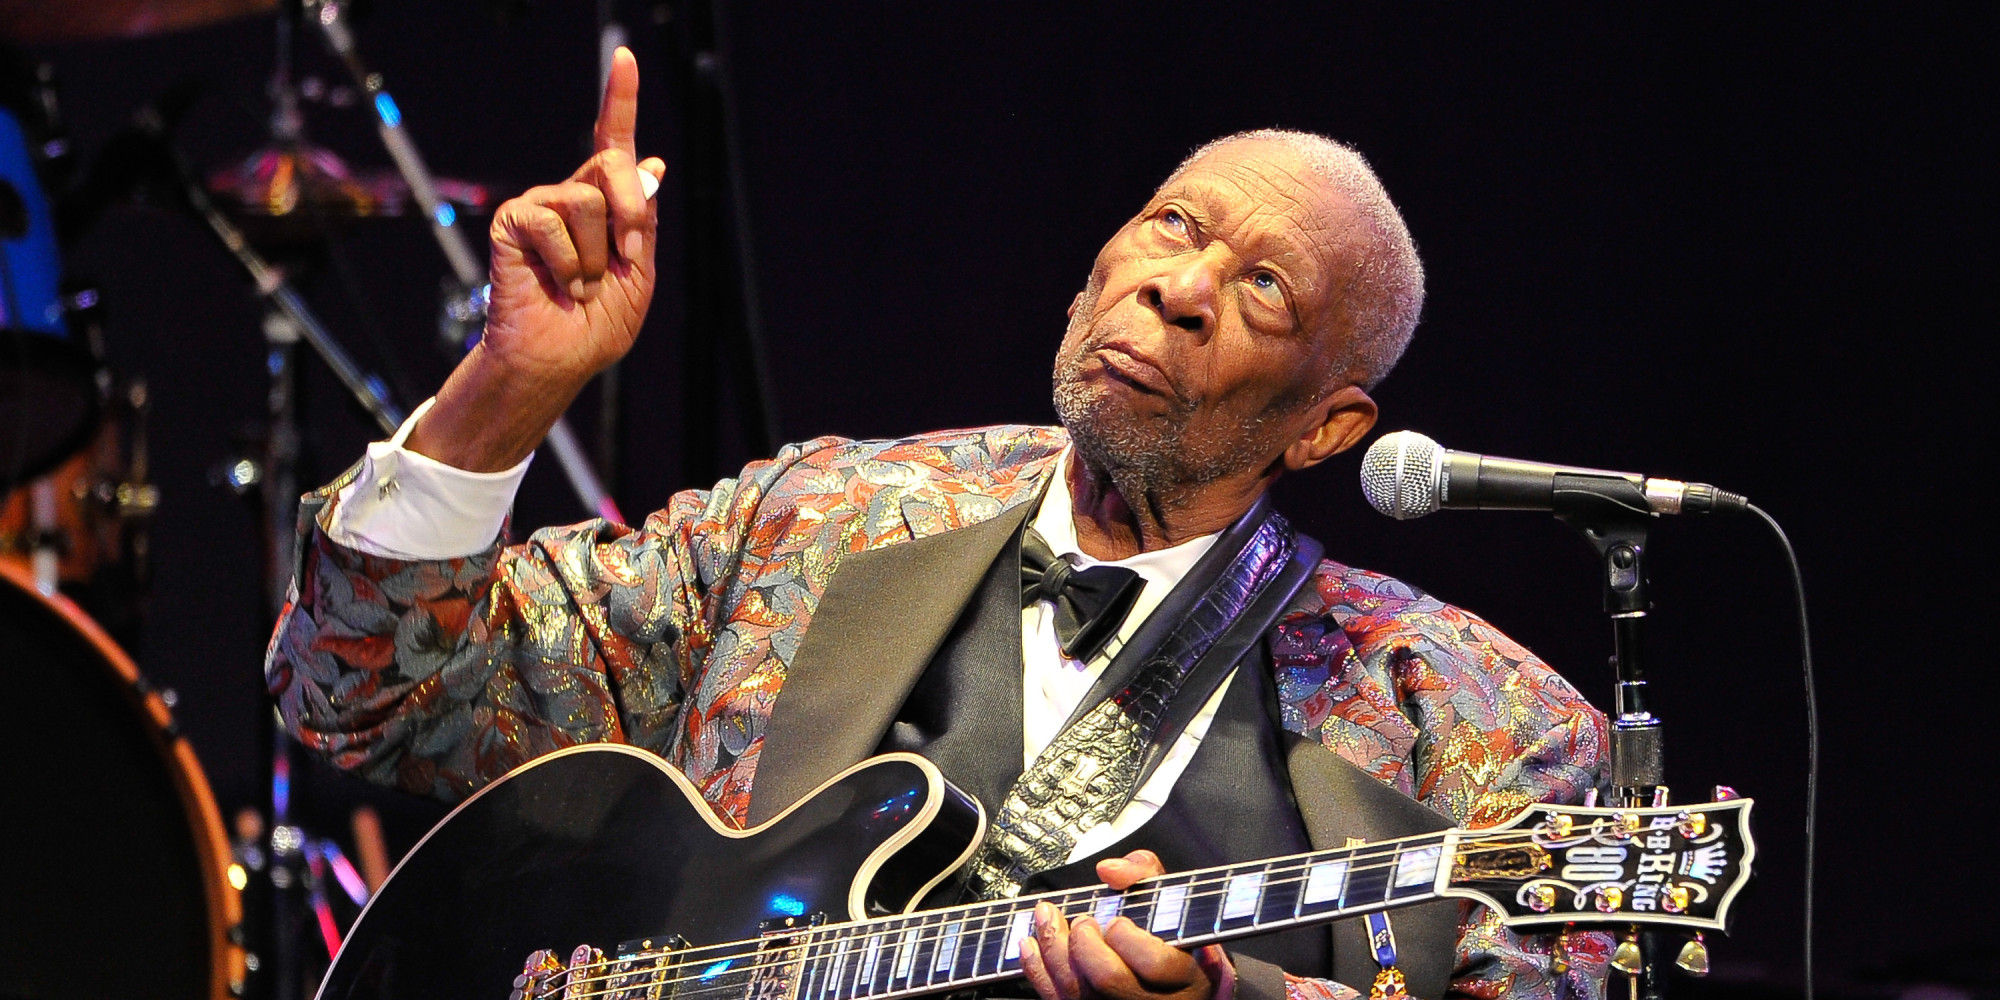 Erratic B B King Performance Leads To Early Departures For Fans